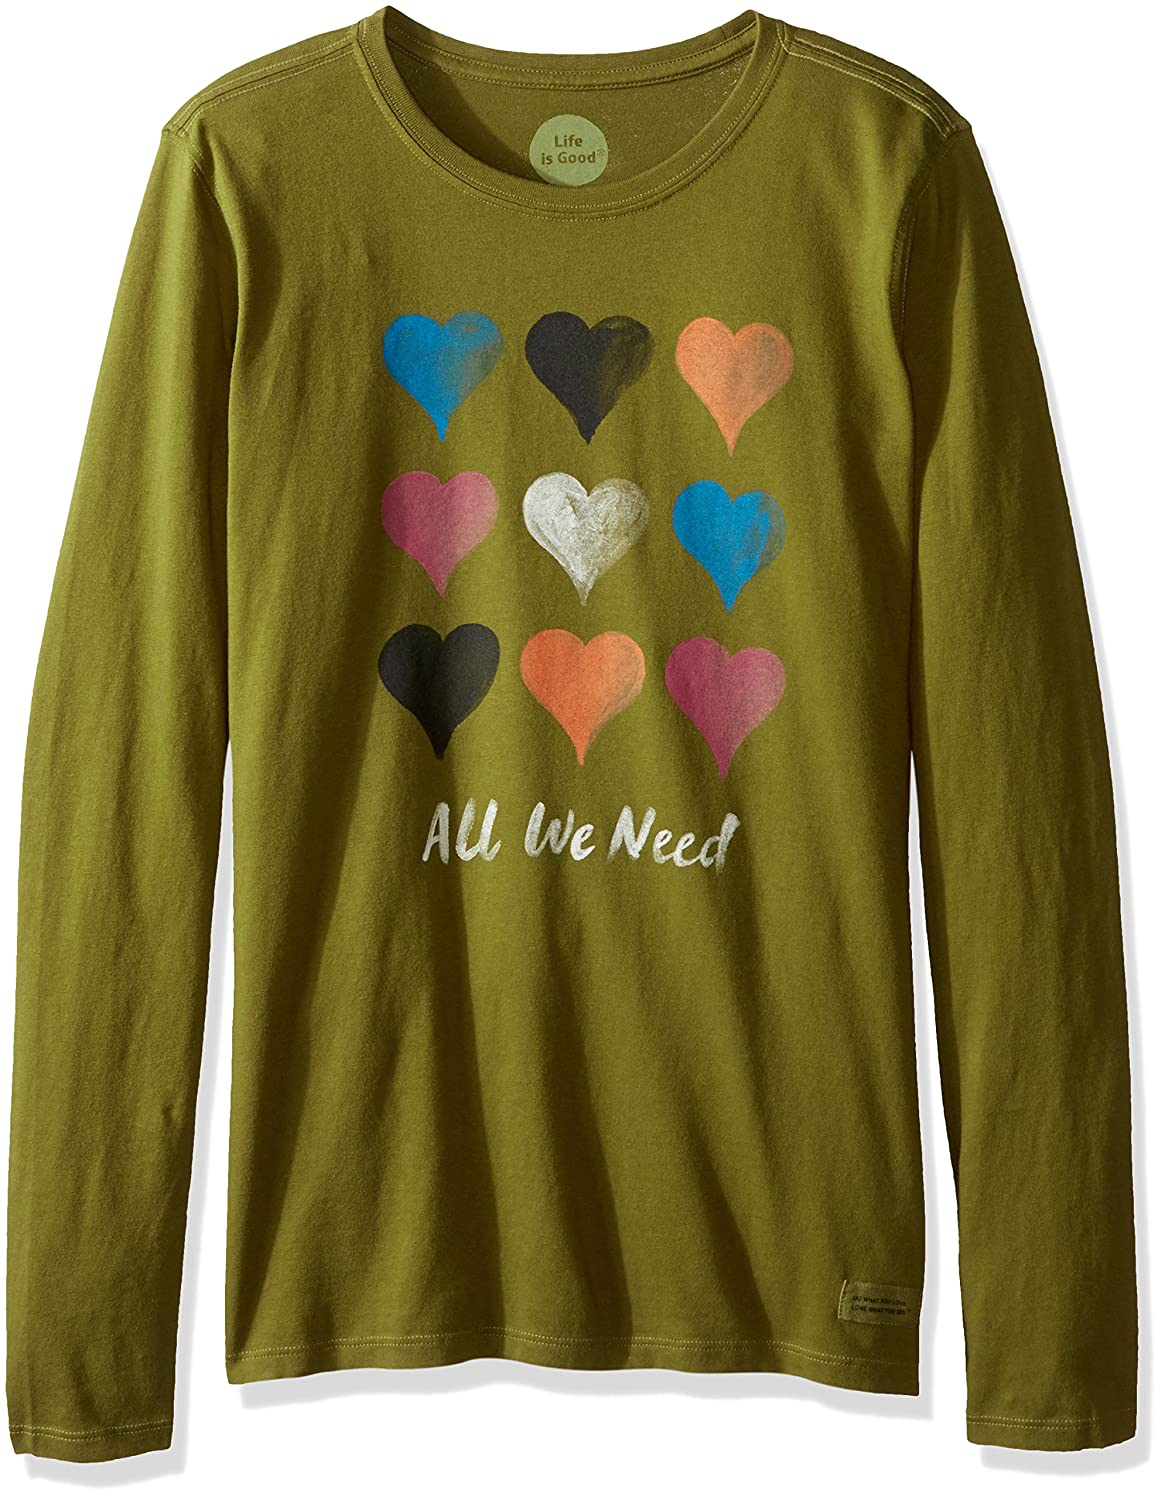 Life is good Crusher longsleeve All We Need Multi T-Shirt, Woodland Green